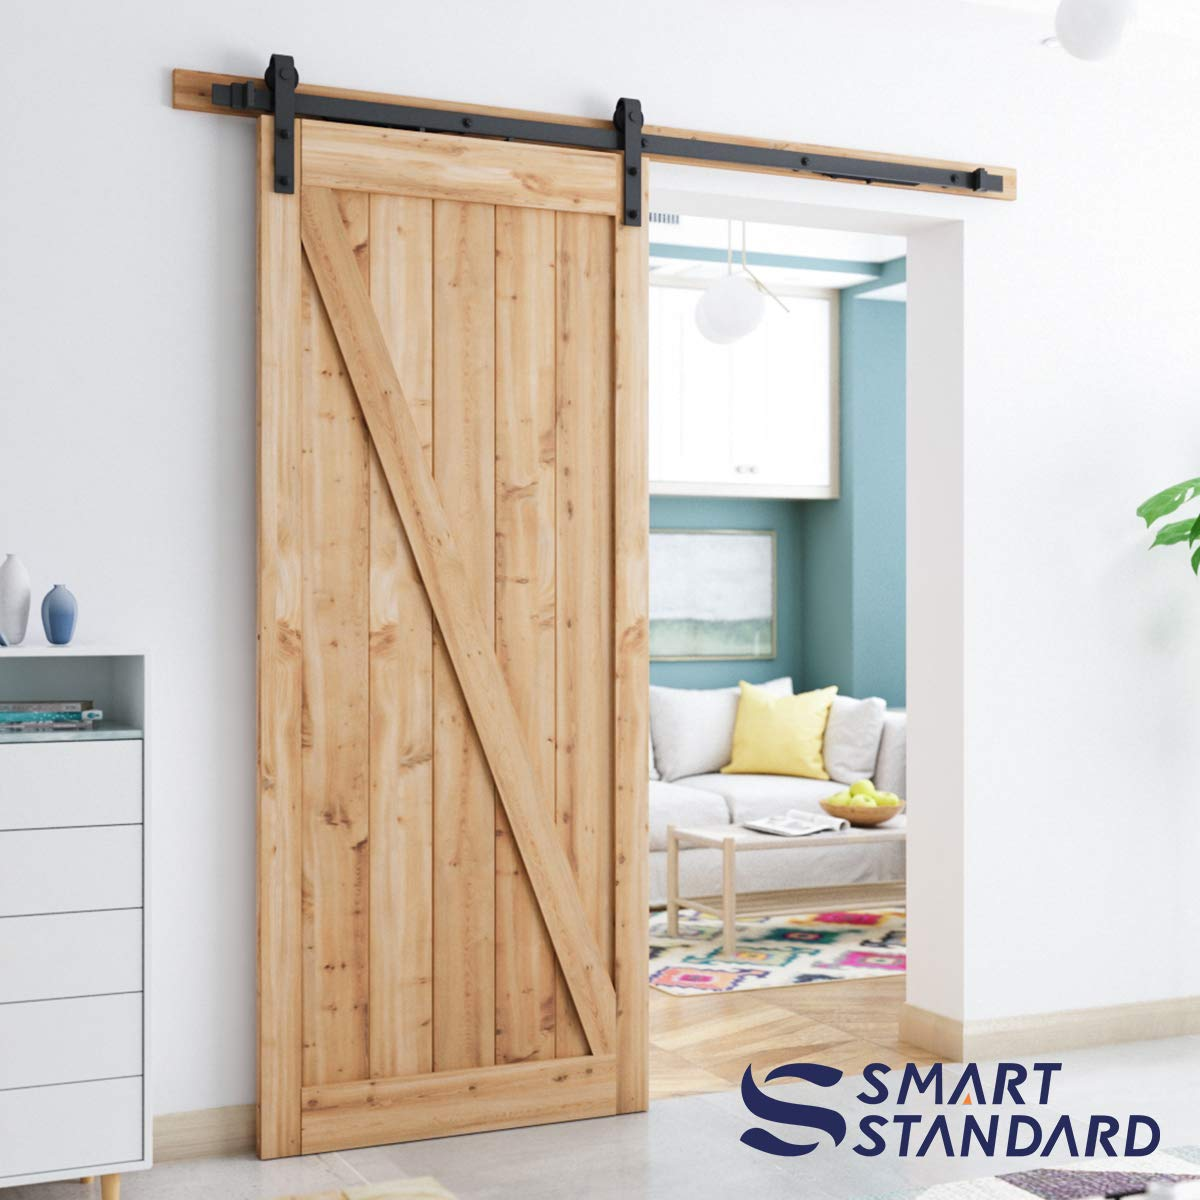 6.6ft Soft Close Heavy Duty Sturdy Sliding Barn Door Hardware Kit - Smoothly and Quietly - Simple and Easy to Install - Includes Step-By-Step Installation Instruction -Fit 36''-40'' Door Panel(J Shape) by SMARTSTANDARD (Image #2)